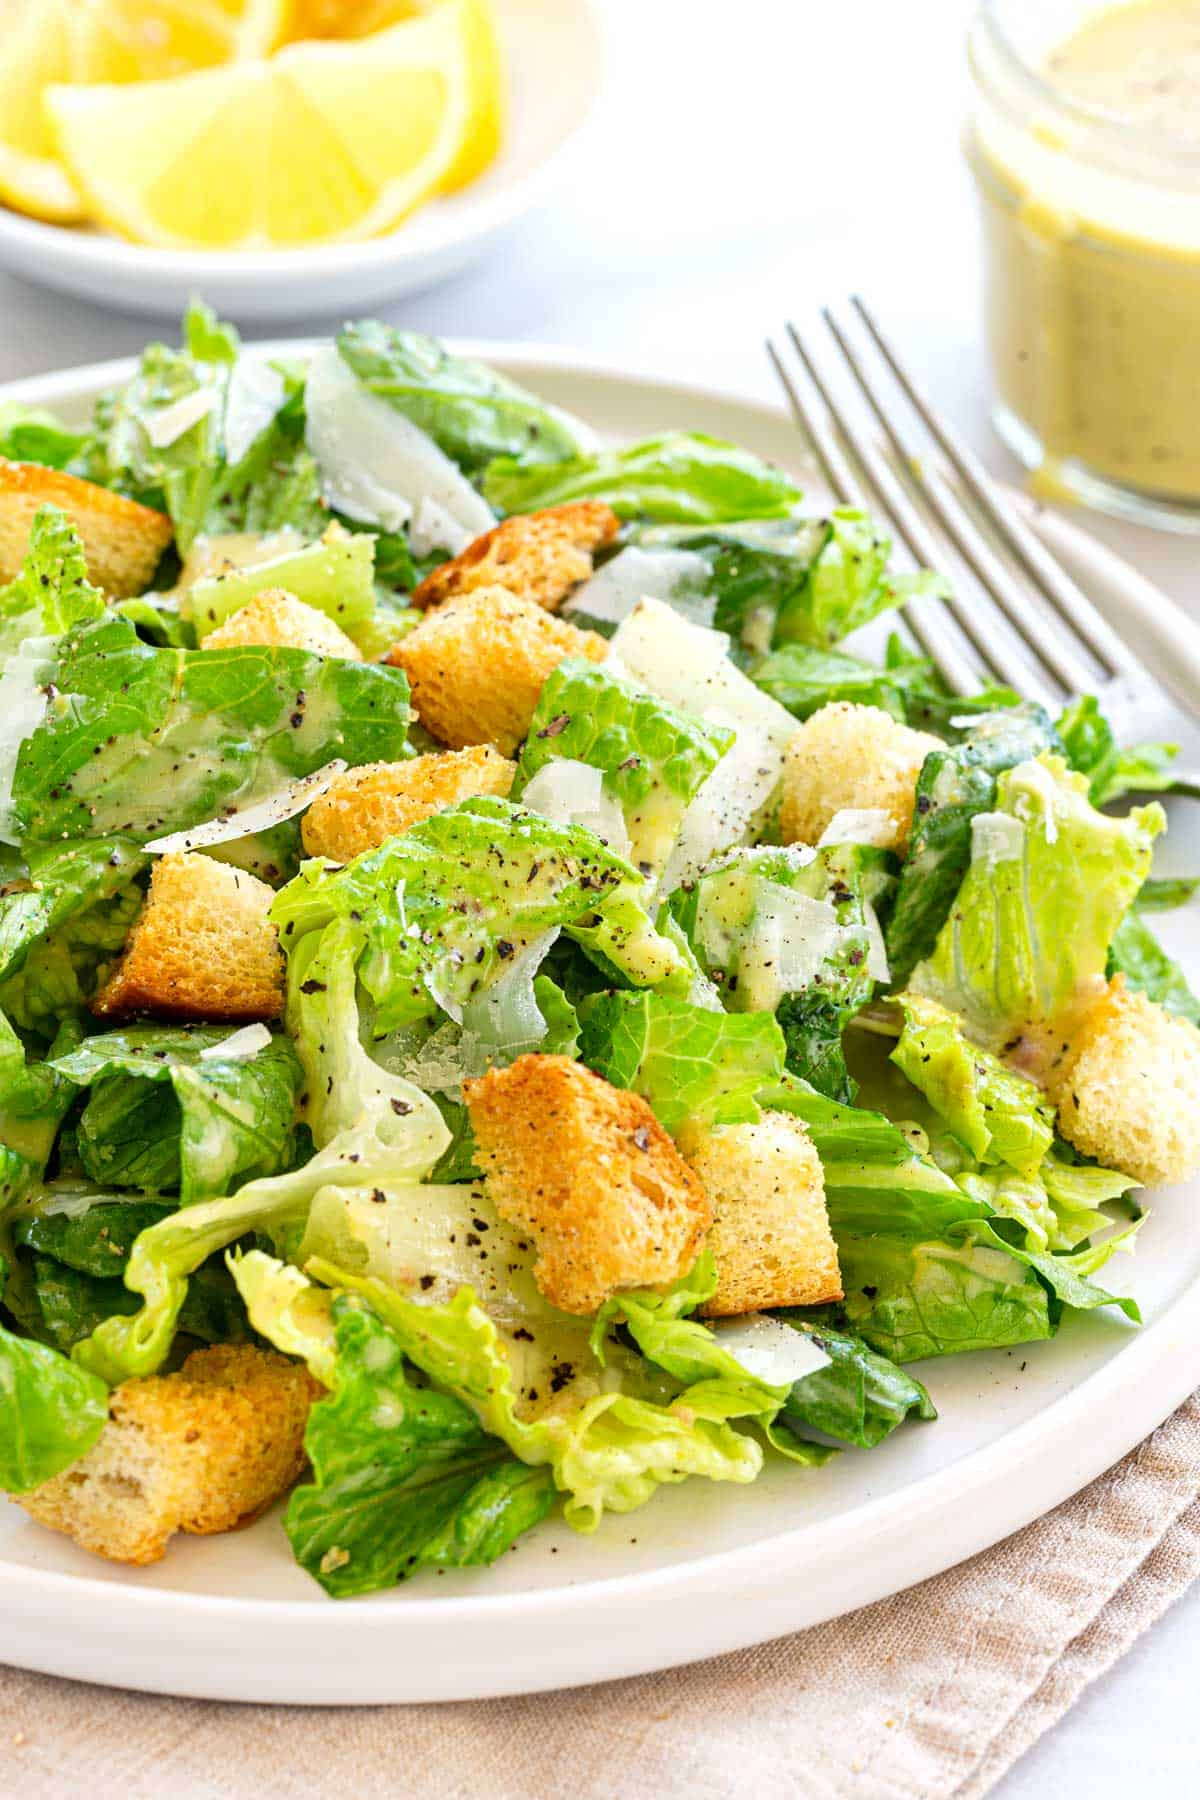 Classic caesar salad made with romaine lettuce and tossed with a creamy homemade dressing. Topped with aged Parmesan cheese and crunchy croutons. #caesarsalad #salad #anchovy